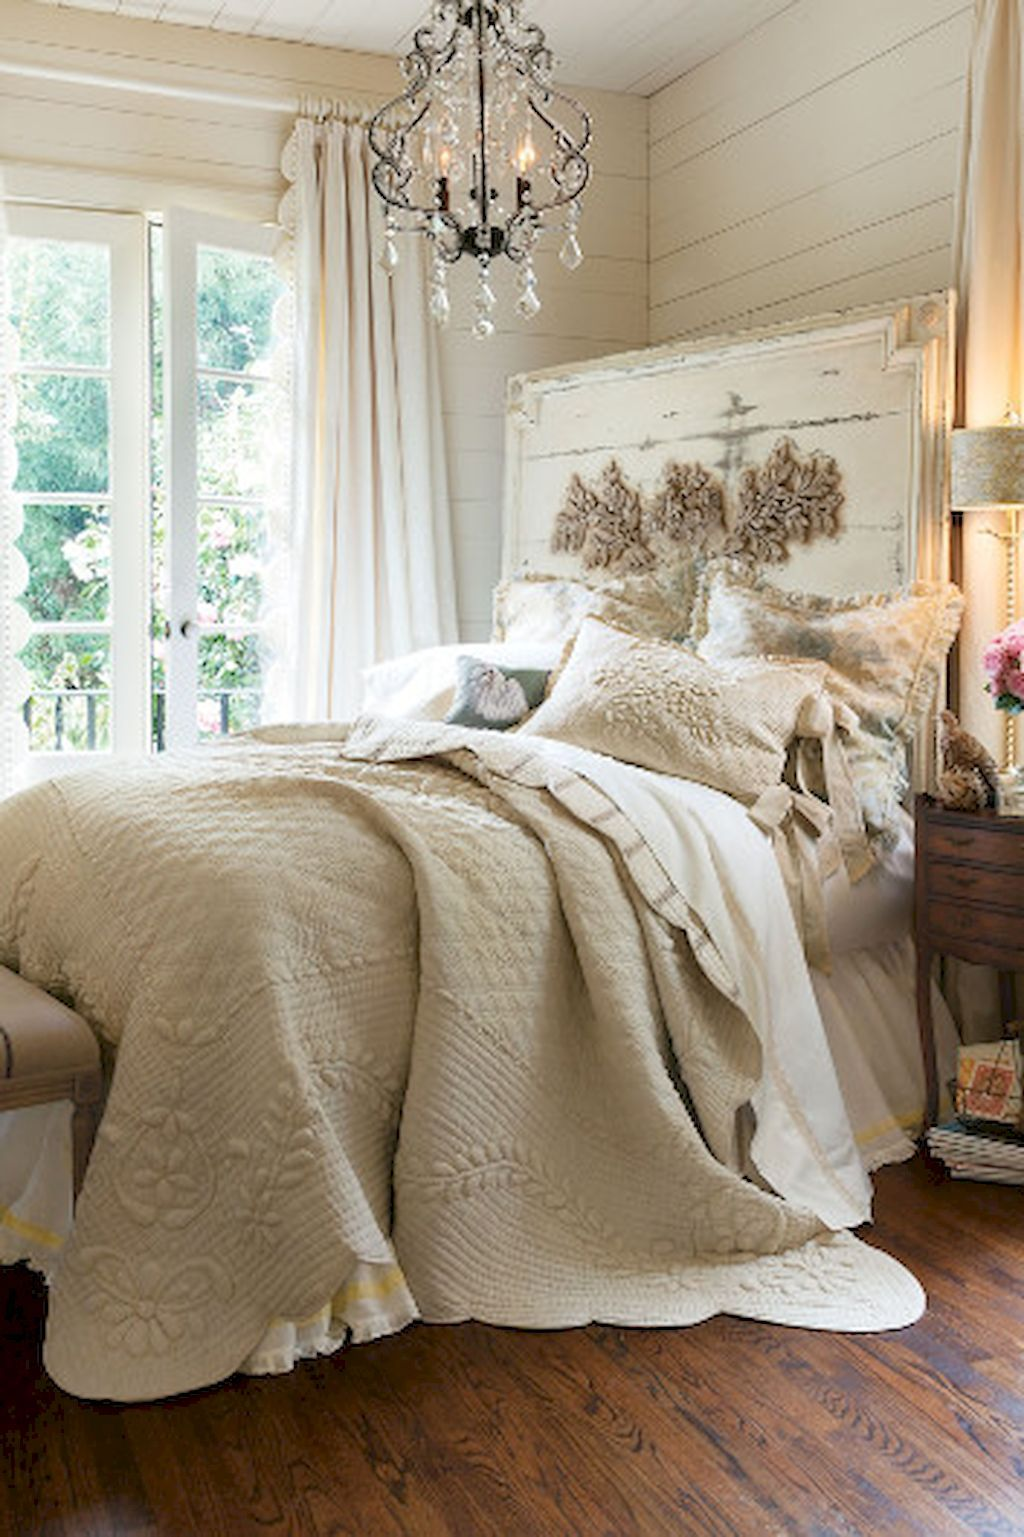 Cool 35 Rustic Shabby Chic Bedroom Decorating